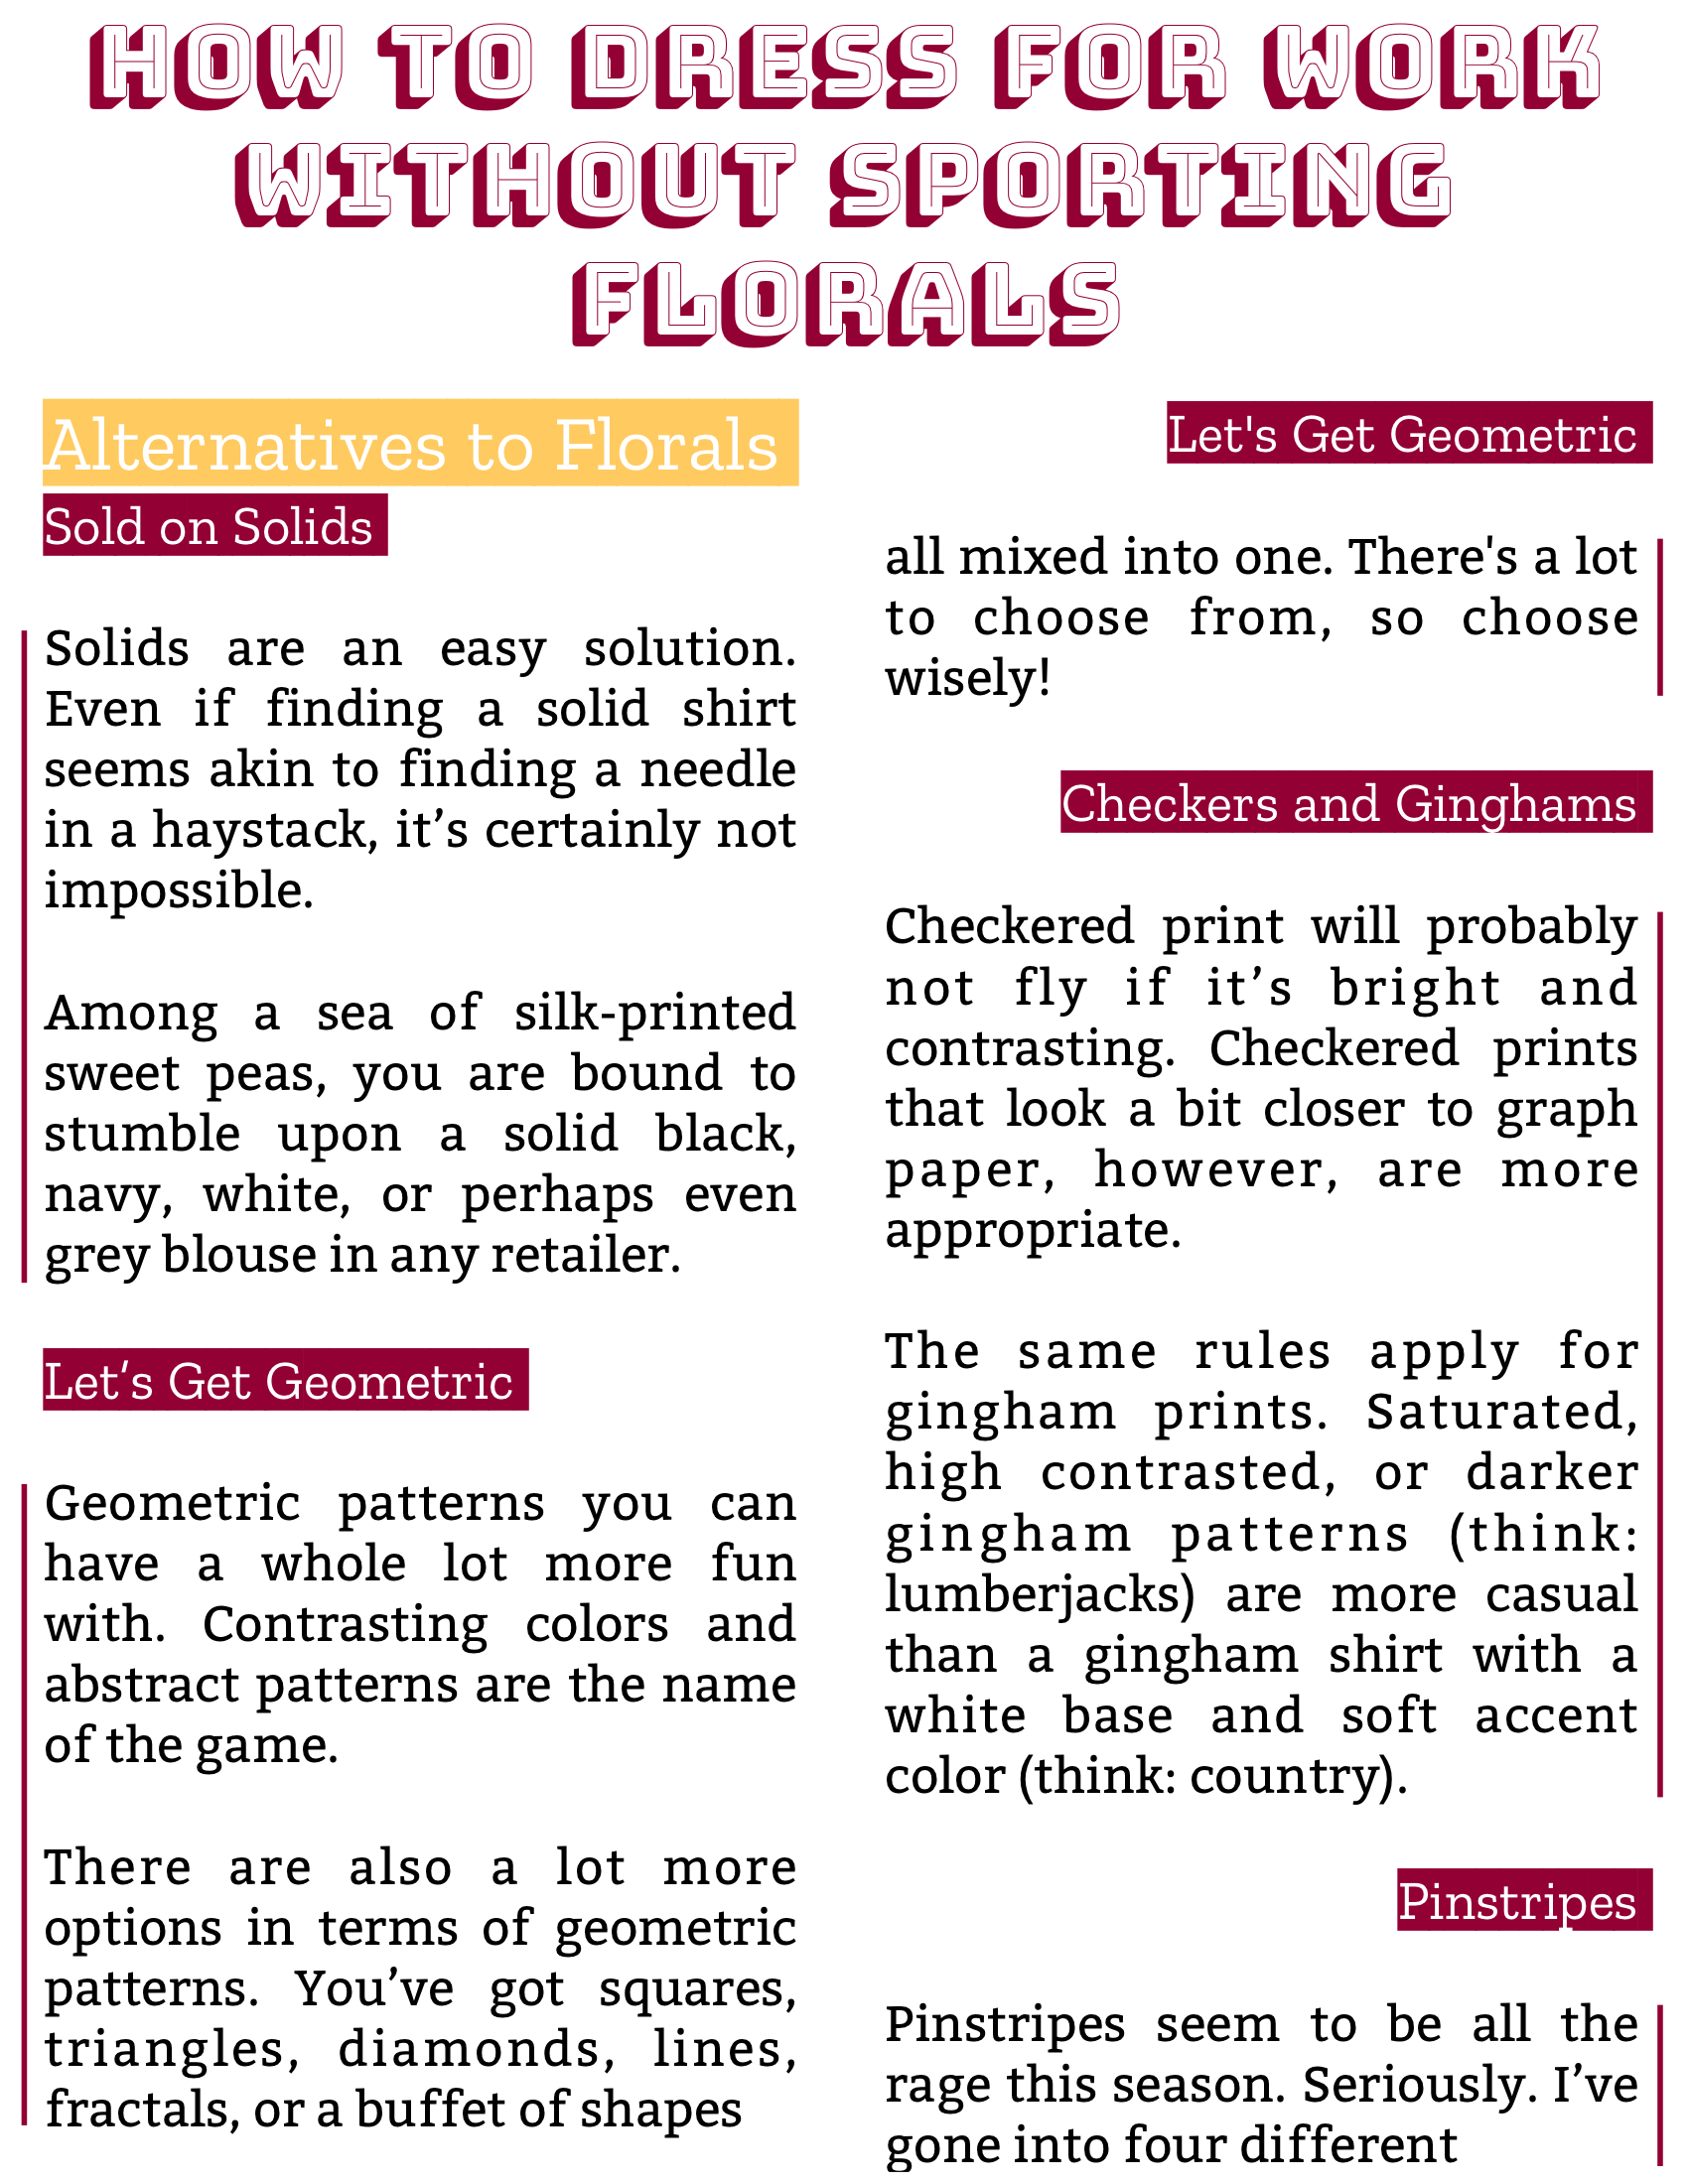 The Burgundy Zine #5: Culture Pg. 66